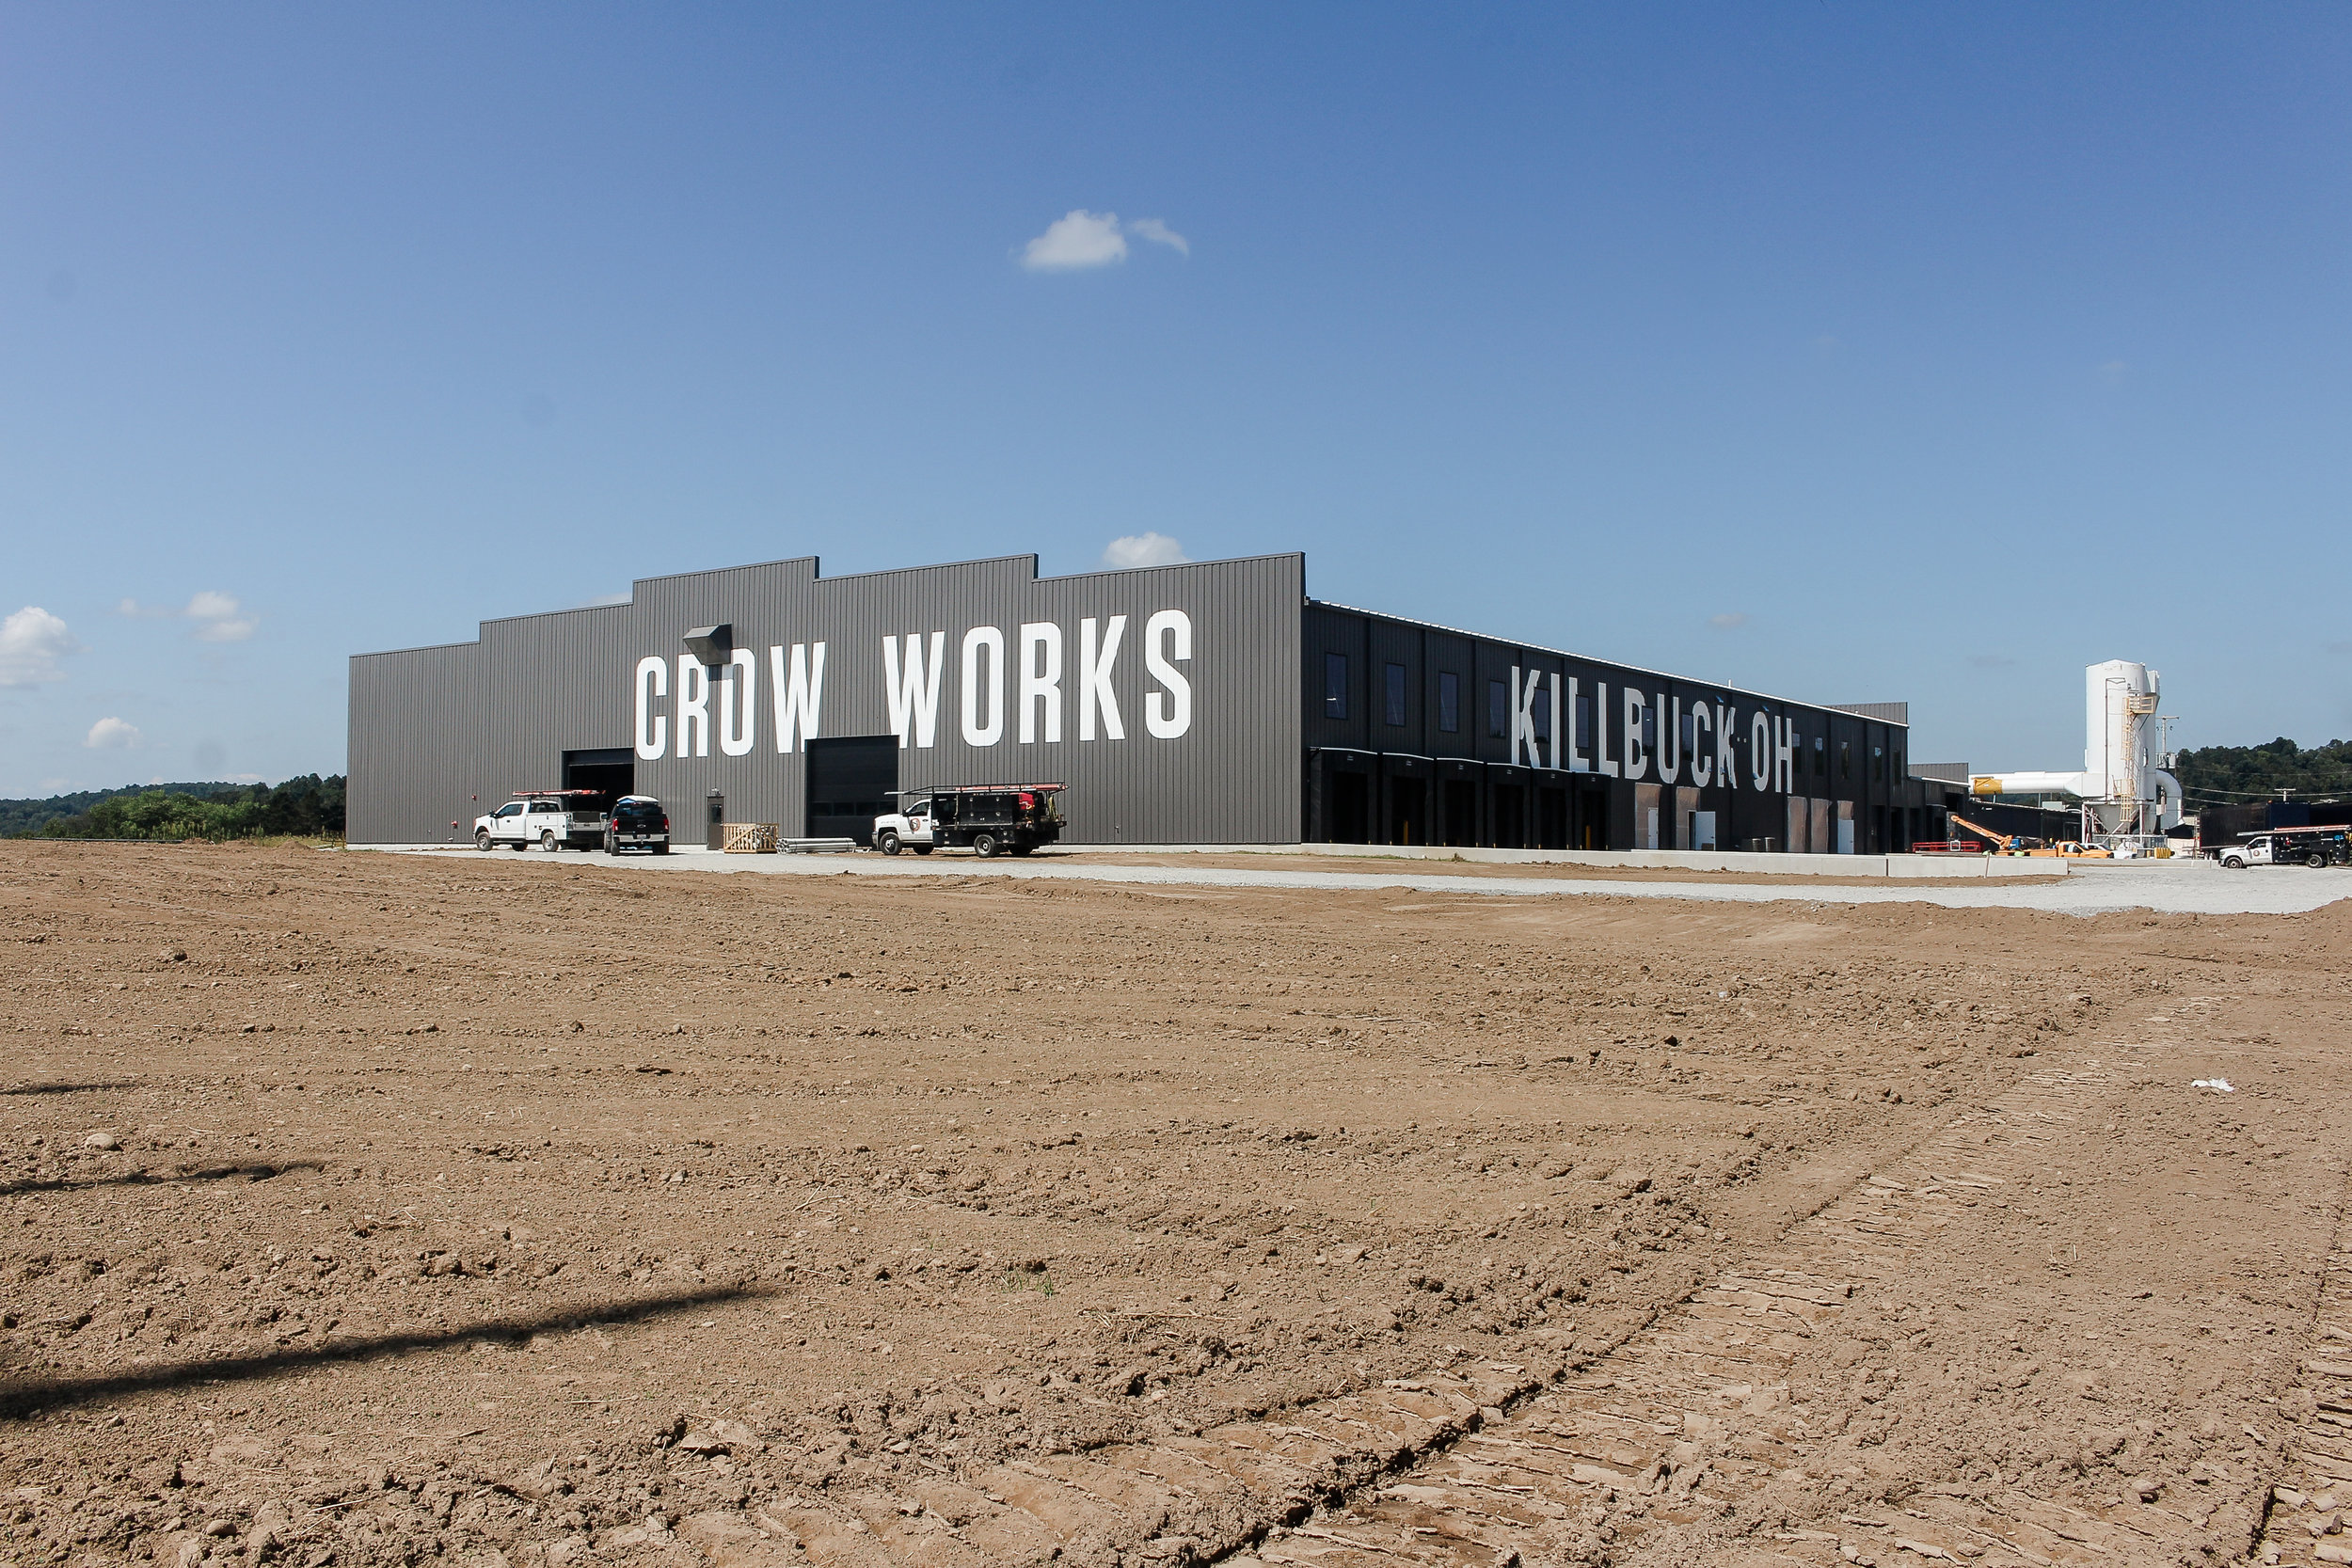 Crow Works Distribution Center